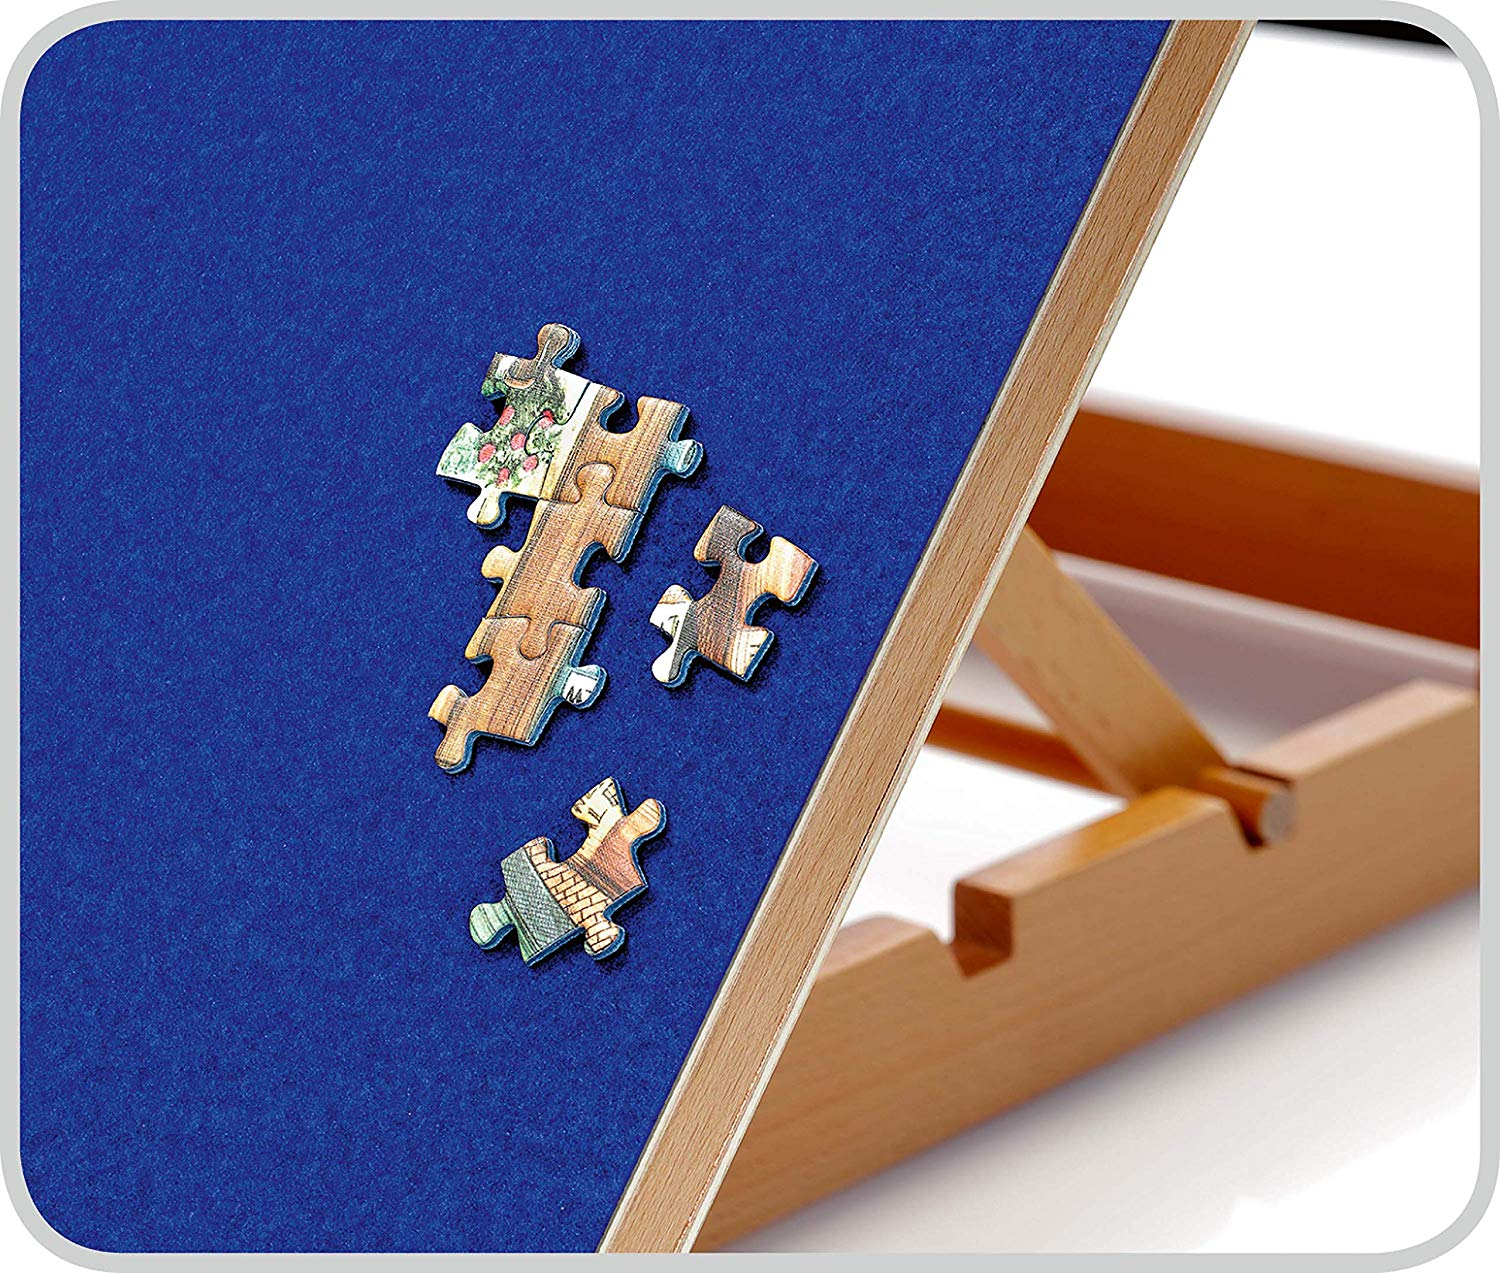 http://data.my-puzzle.fr/ravensburger.5/puzzle-board-puzzle-1000-pieces.75125-3.fs.jpg